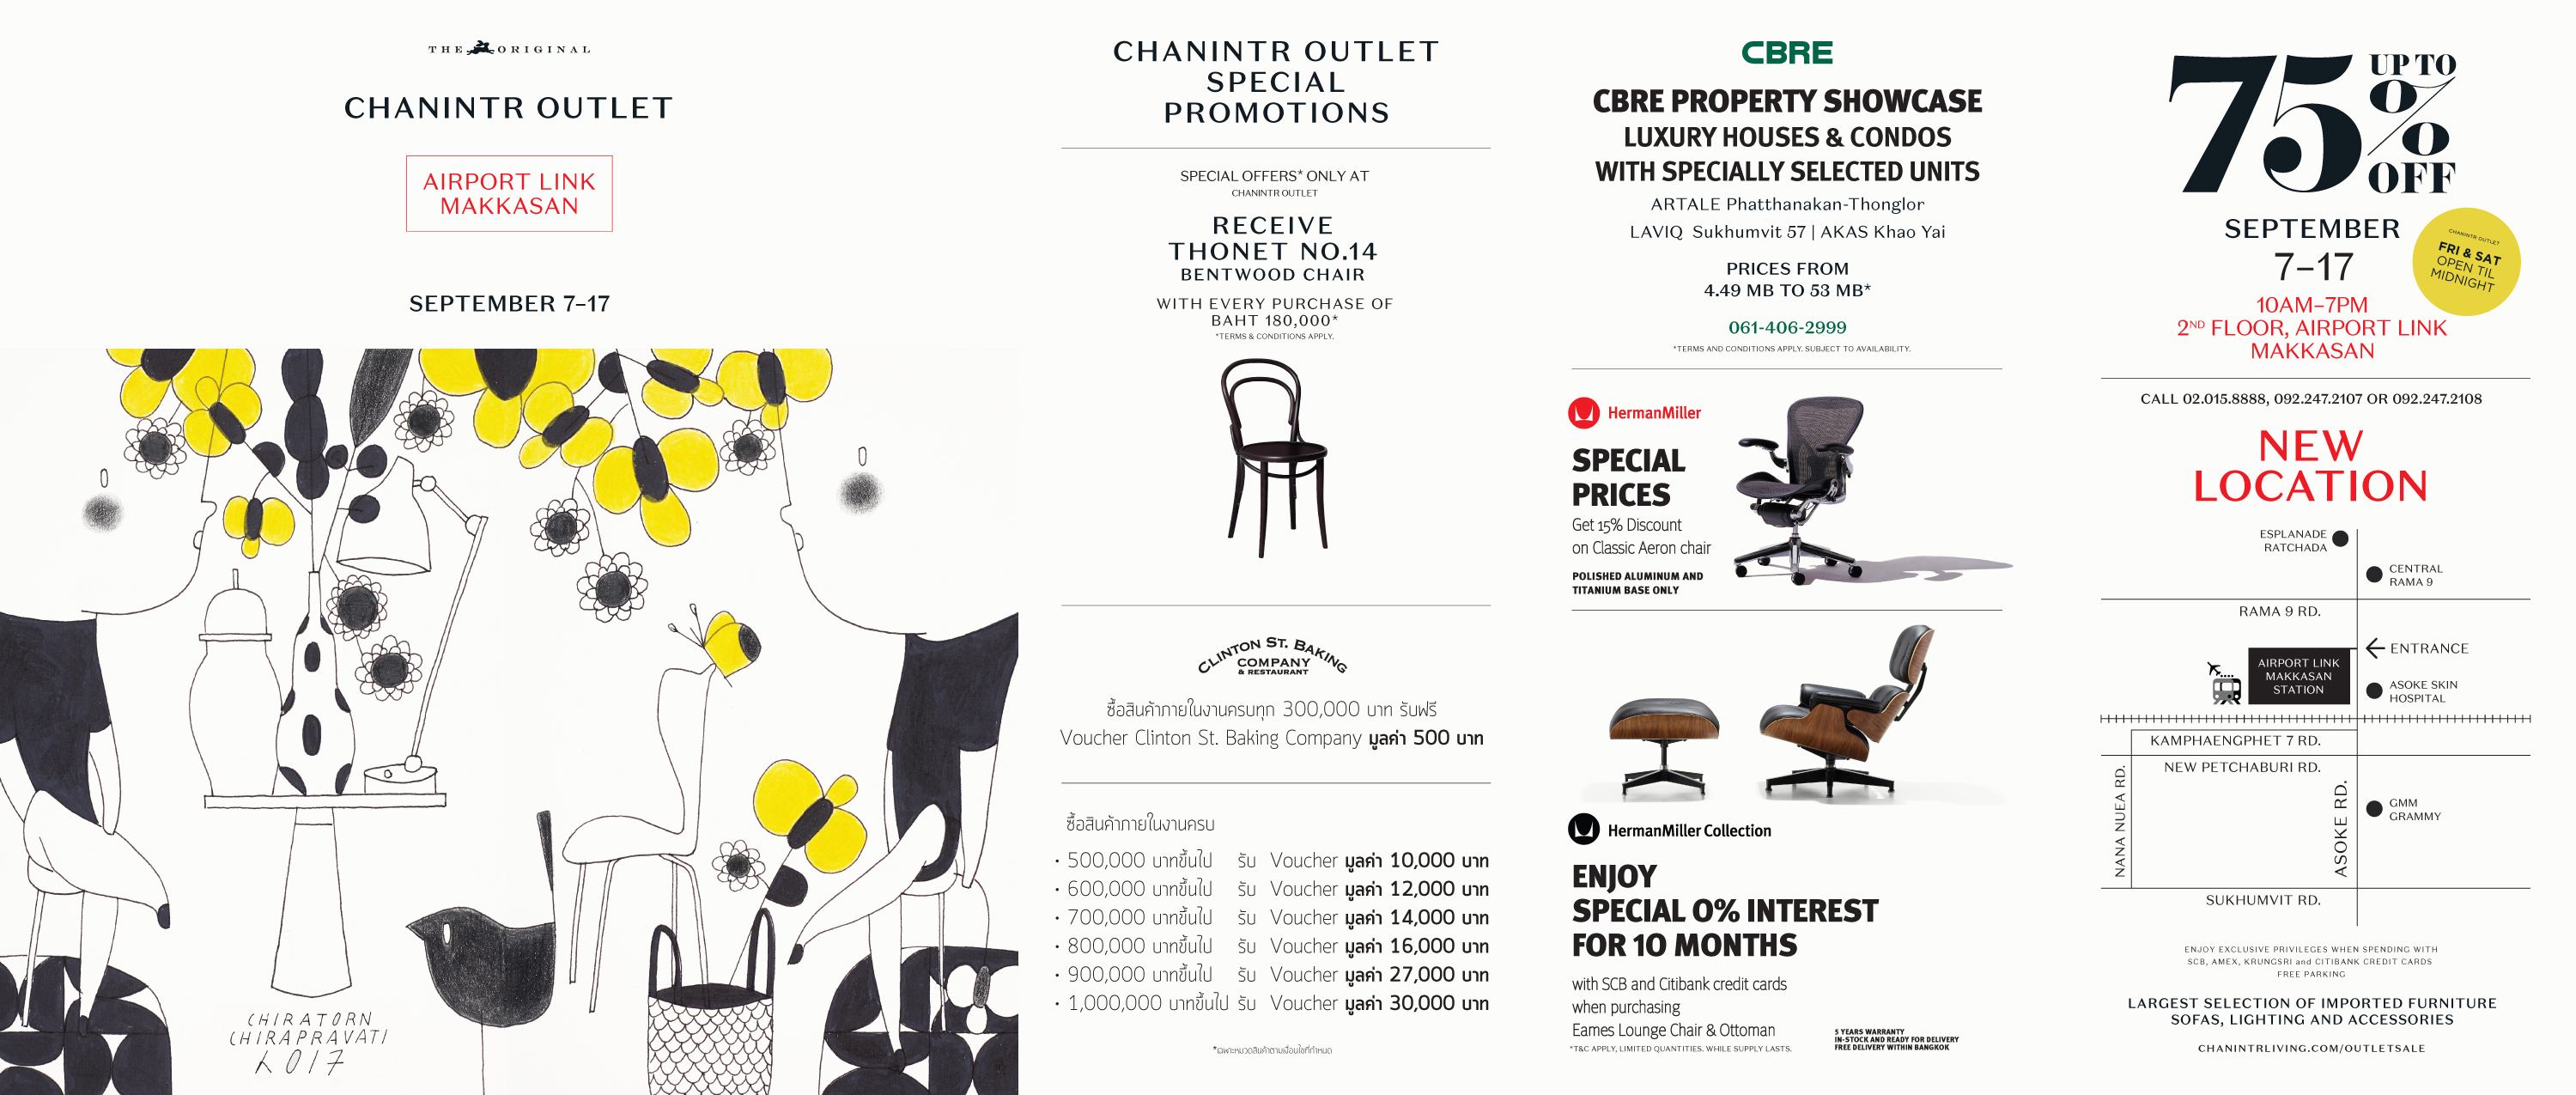 Chanintr Outlet Products 2017 - A